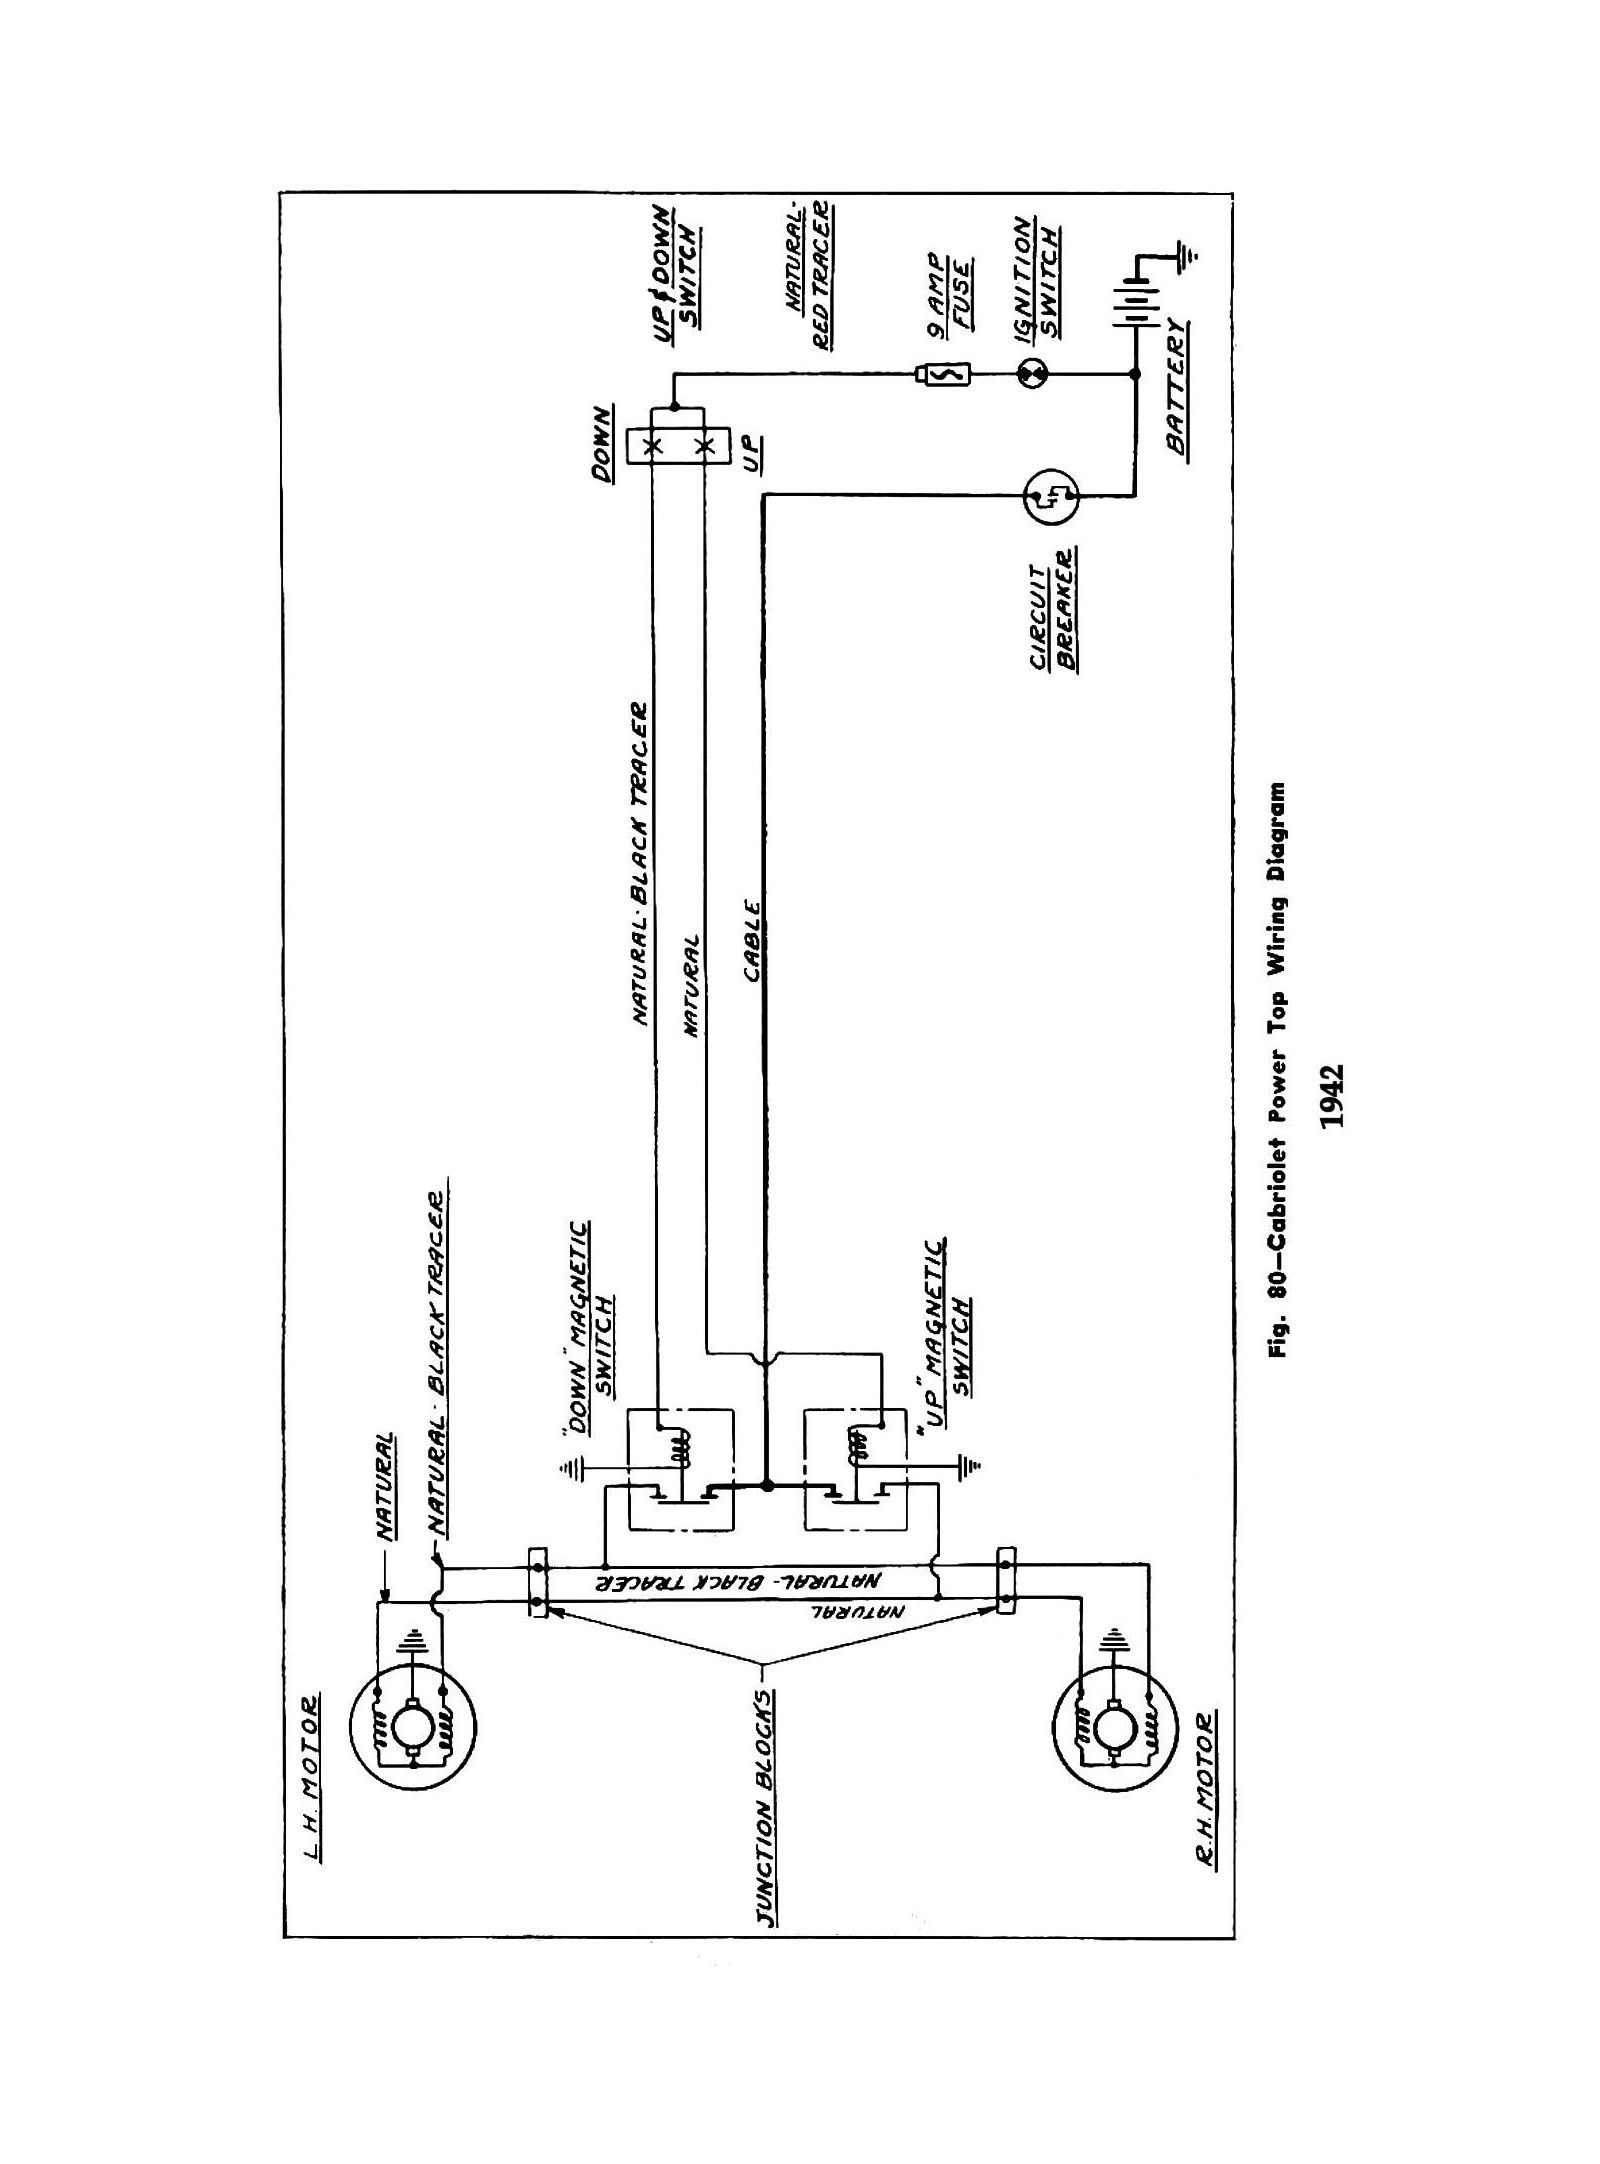 chevy wiring diagrams rh chevy oldcarmanualproject com Wiring Diagram for 1950 GMC 1951 Chevy Truck Wiring Diagram